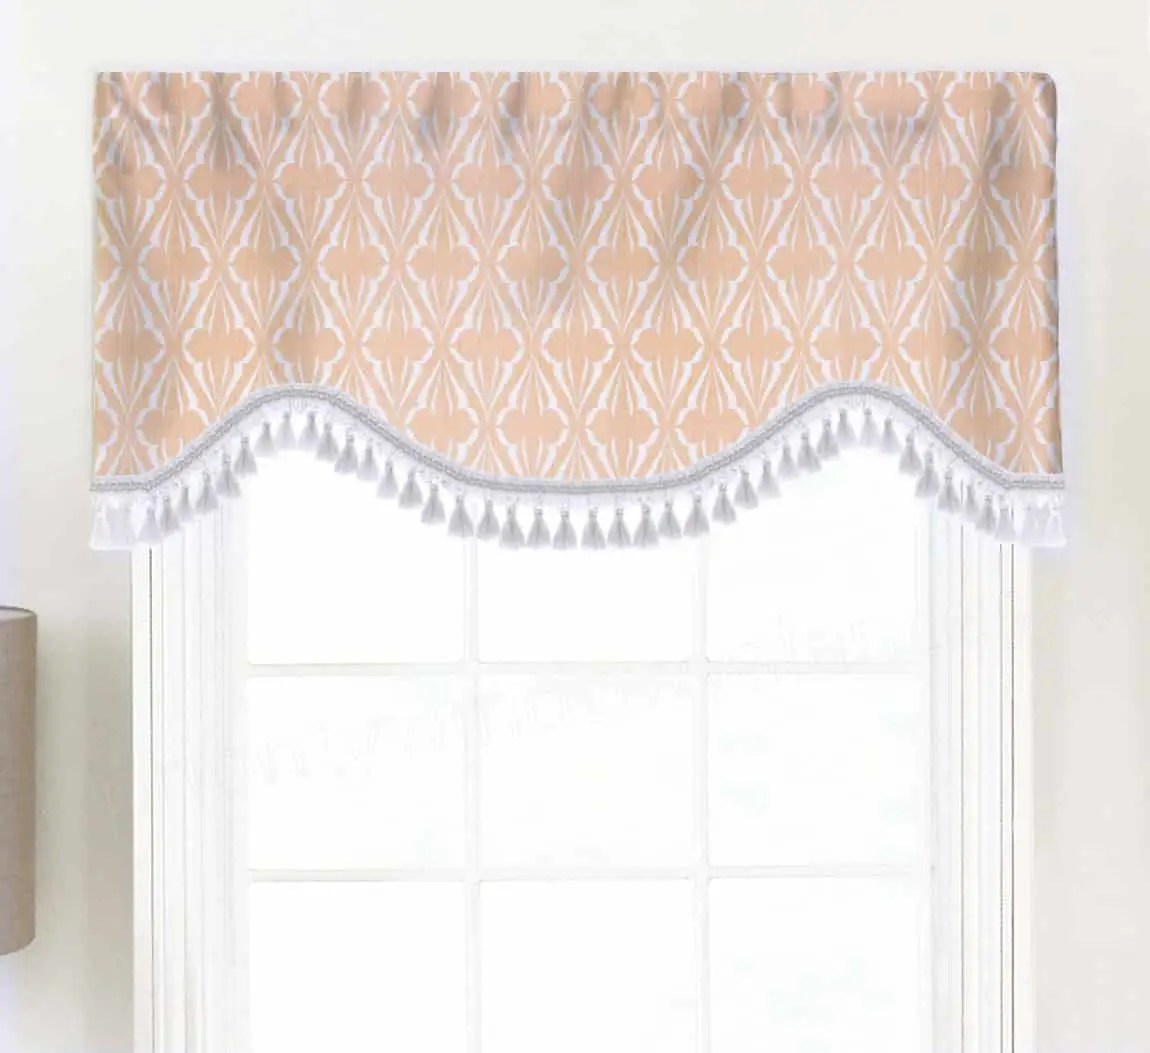 Biscay Blue Green Salmon Pink Shaped Valance Curtain